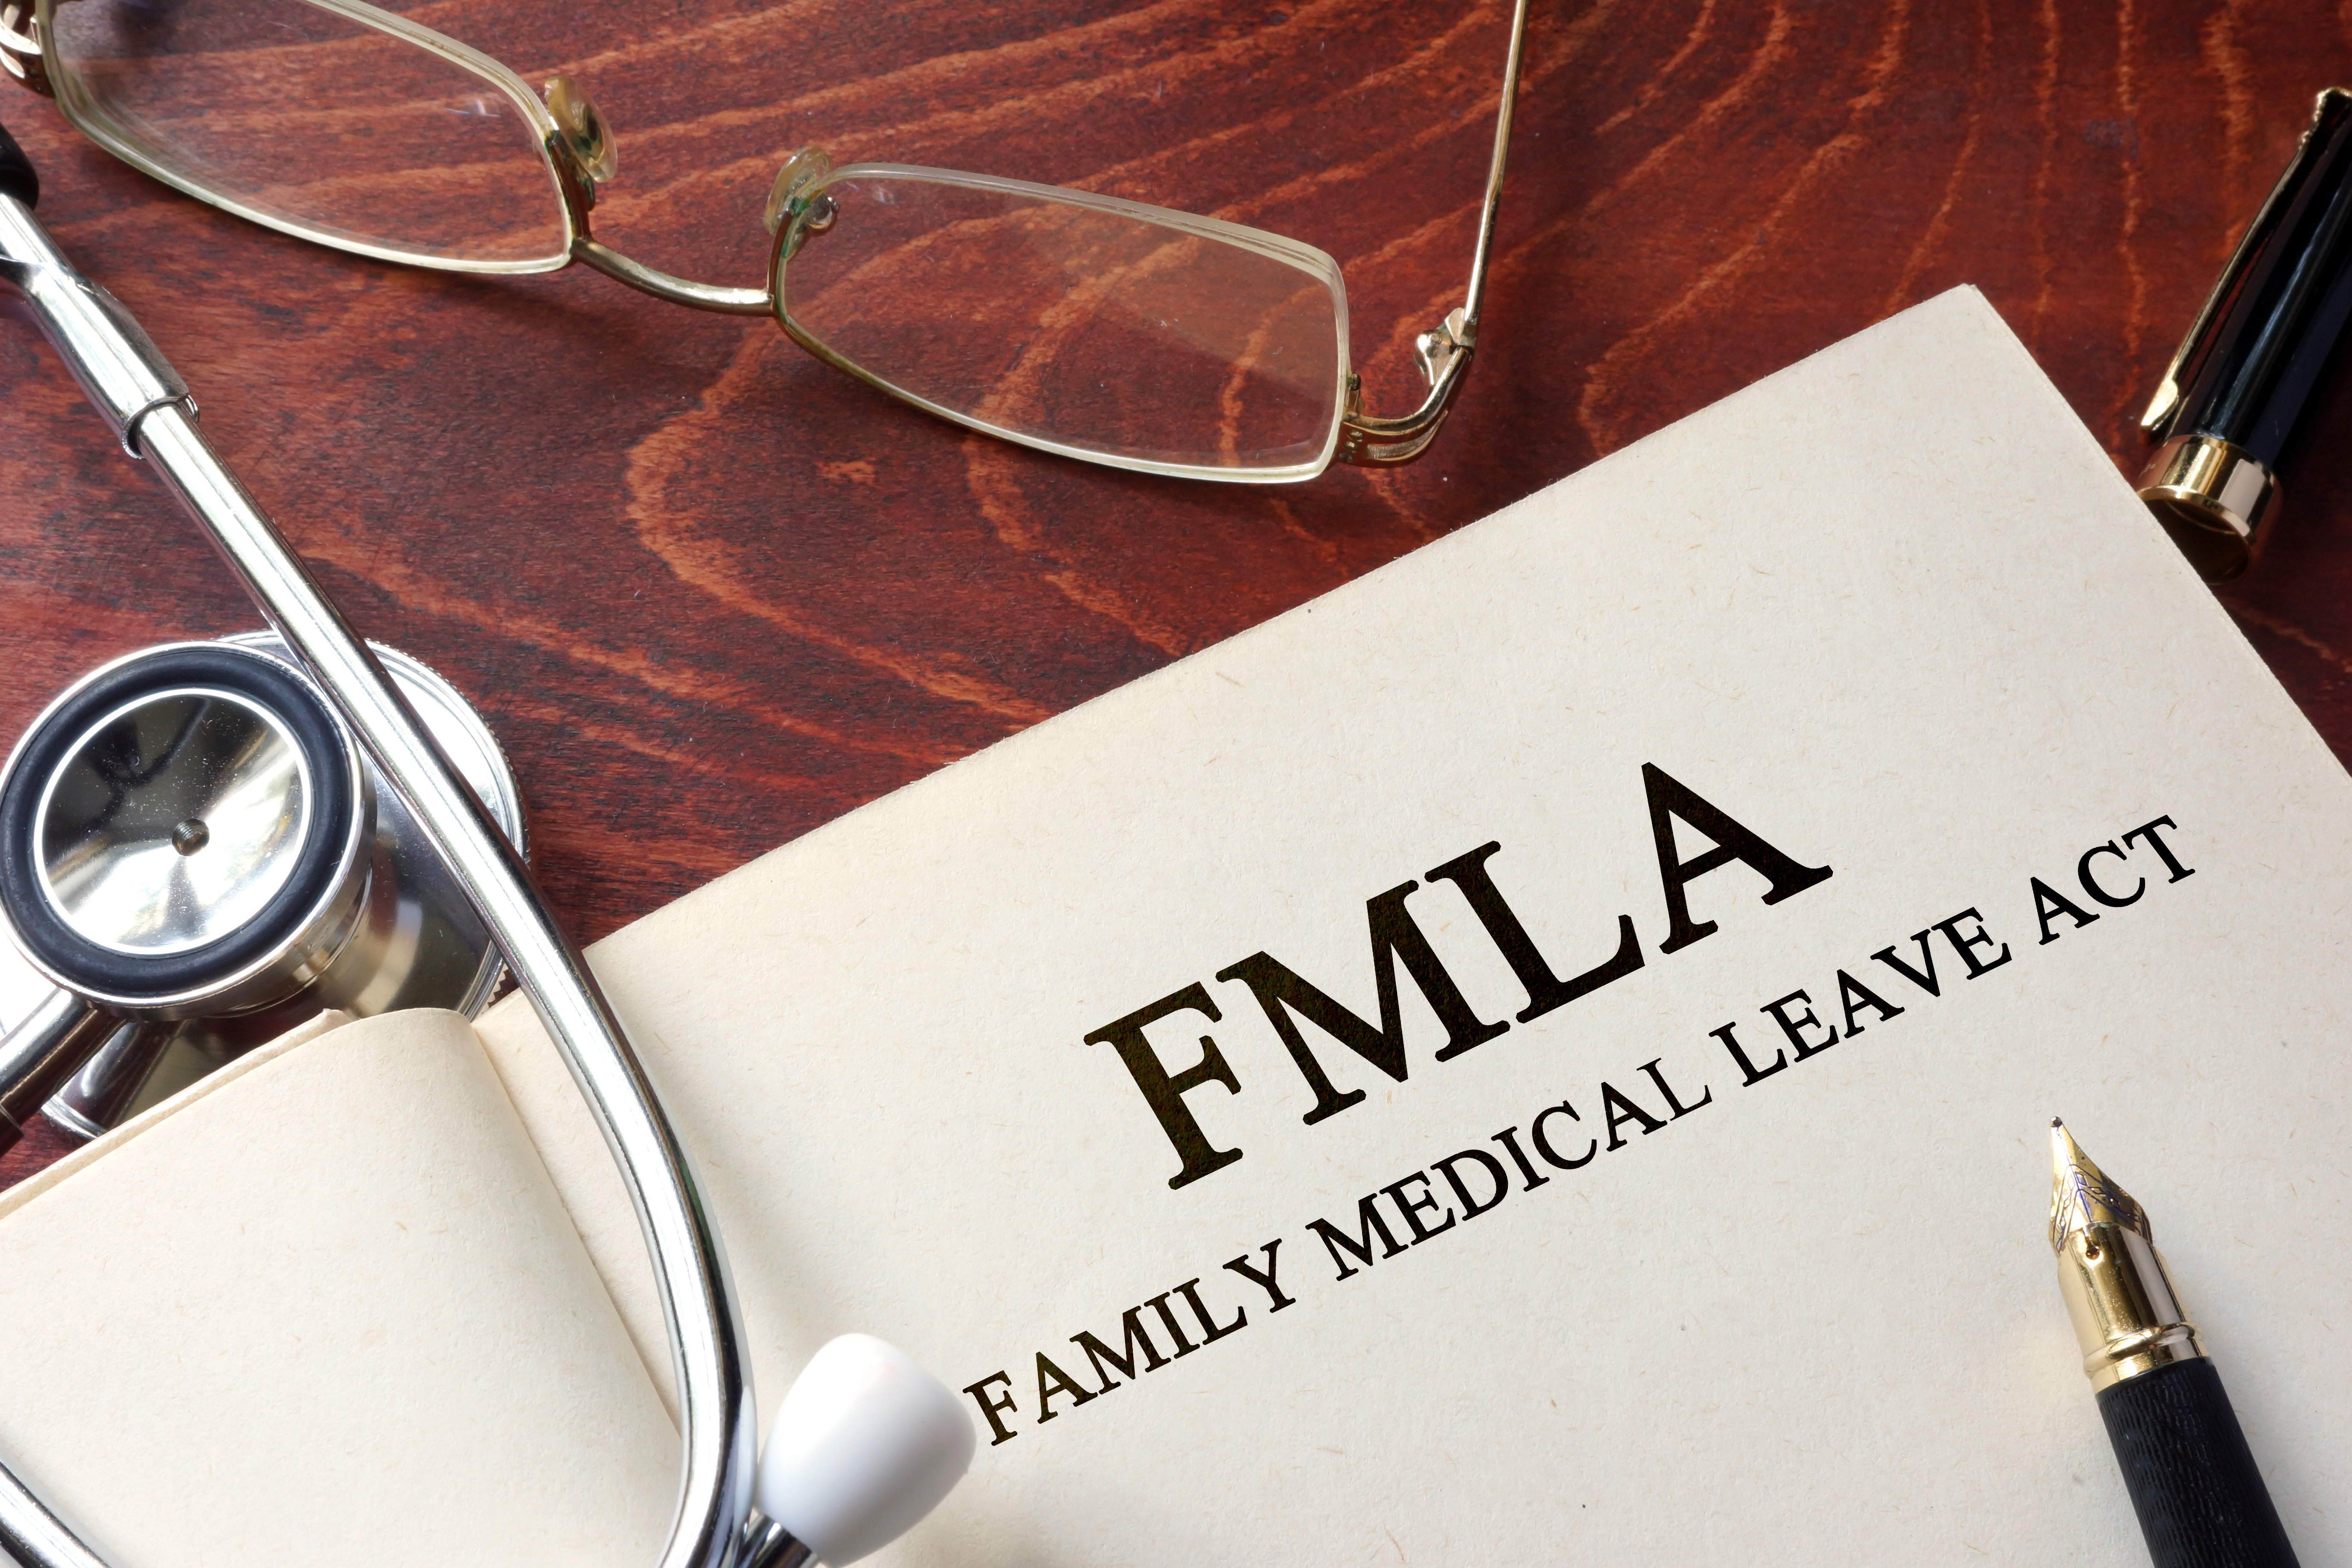 Fmla Forms Updated By Dol The Safegard Group Inc The Safegard